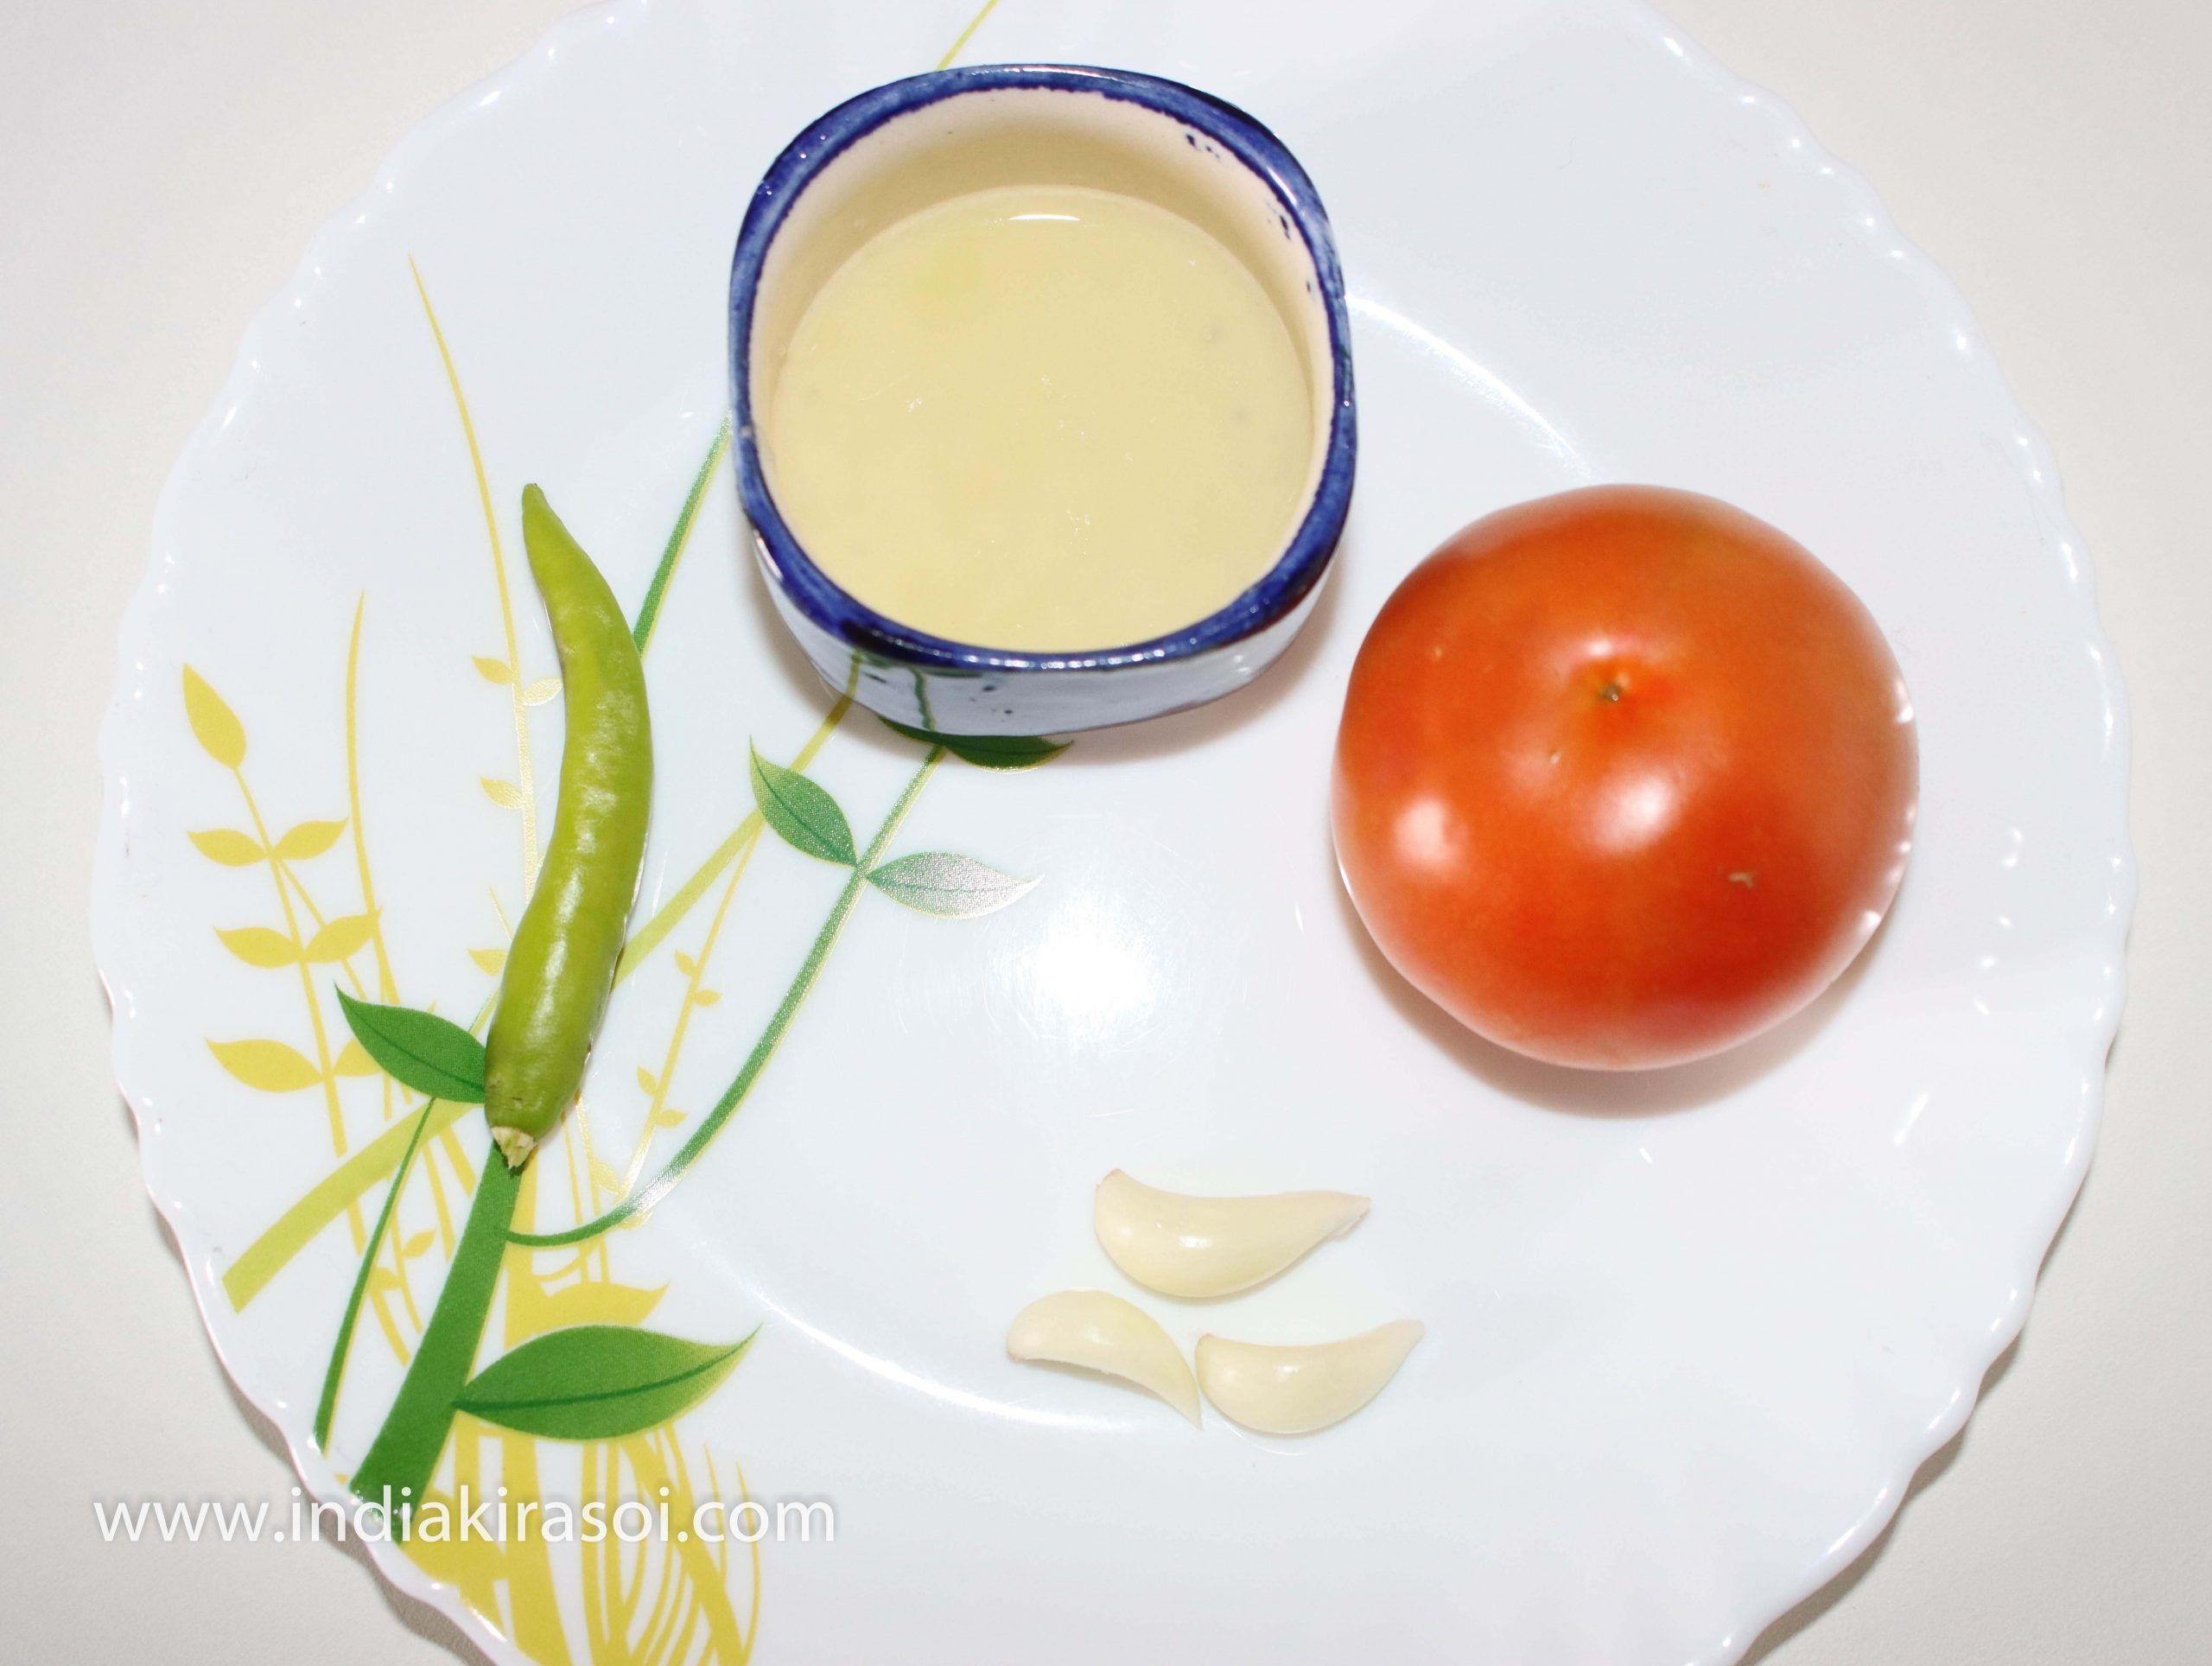 Take one medium-sized tomato, one green chili, 3 garlic cloves and 2 teaspoons lemon juice with it.